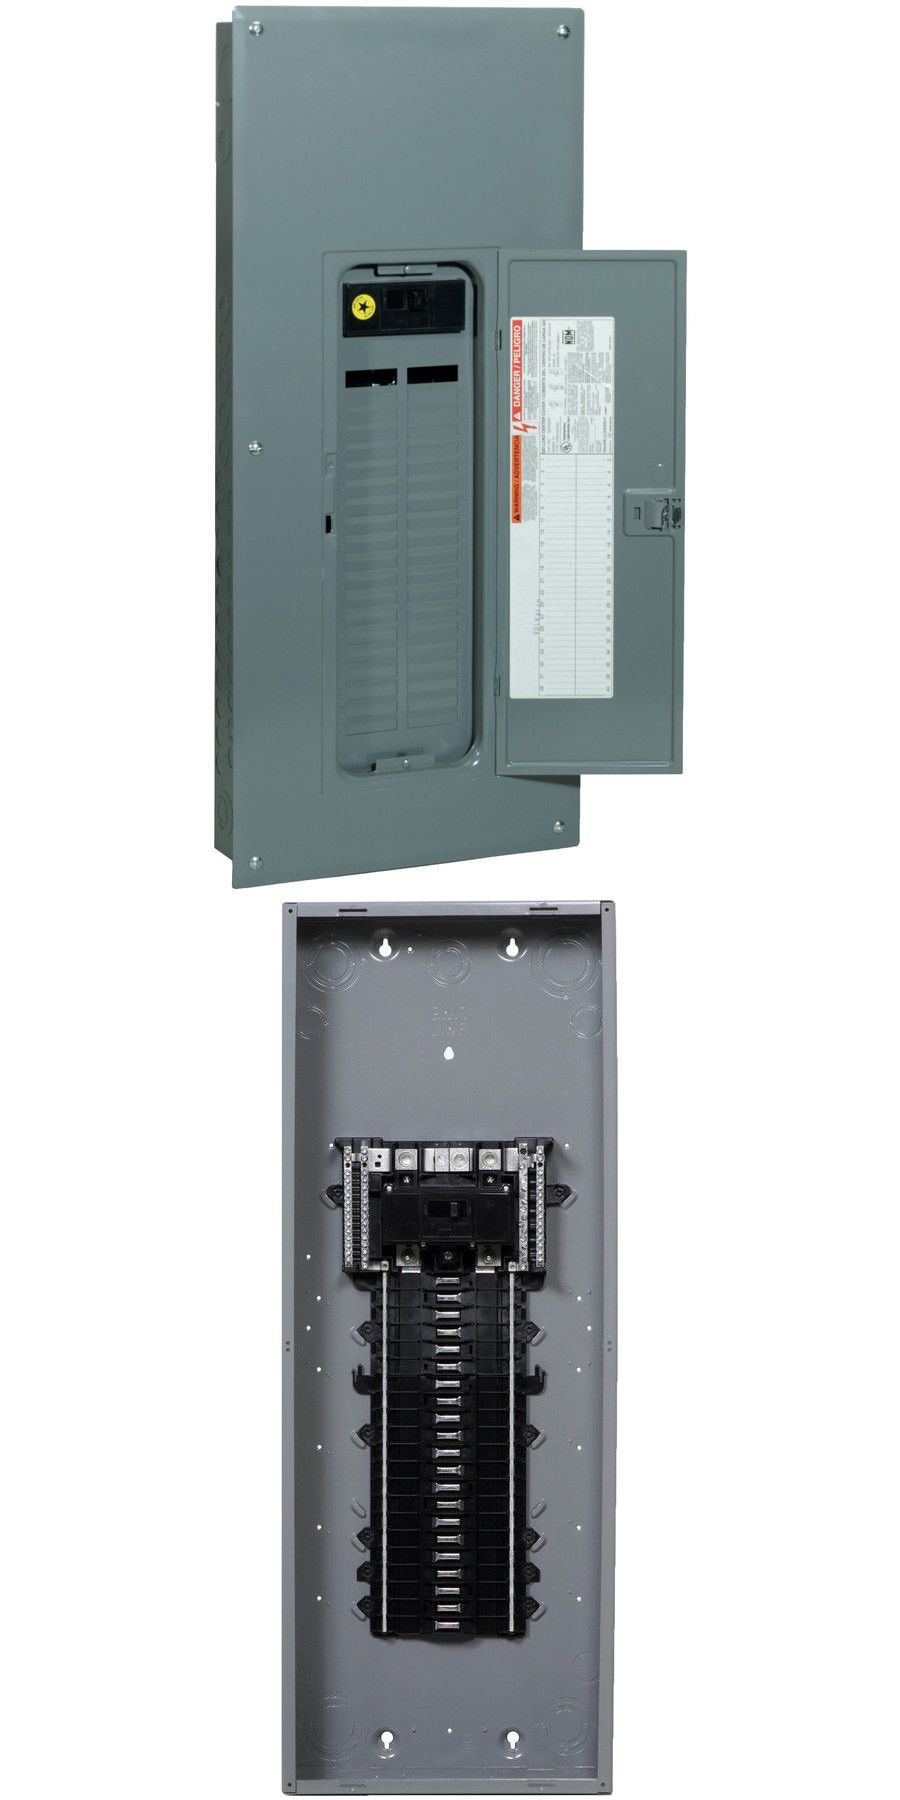 Pin On Circuit Breakers And Fuse Boxes 20596